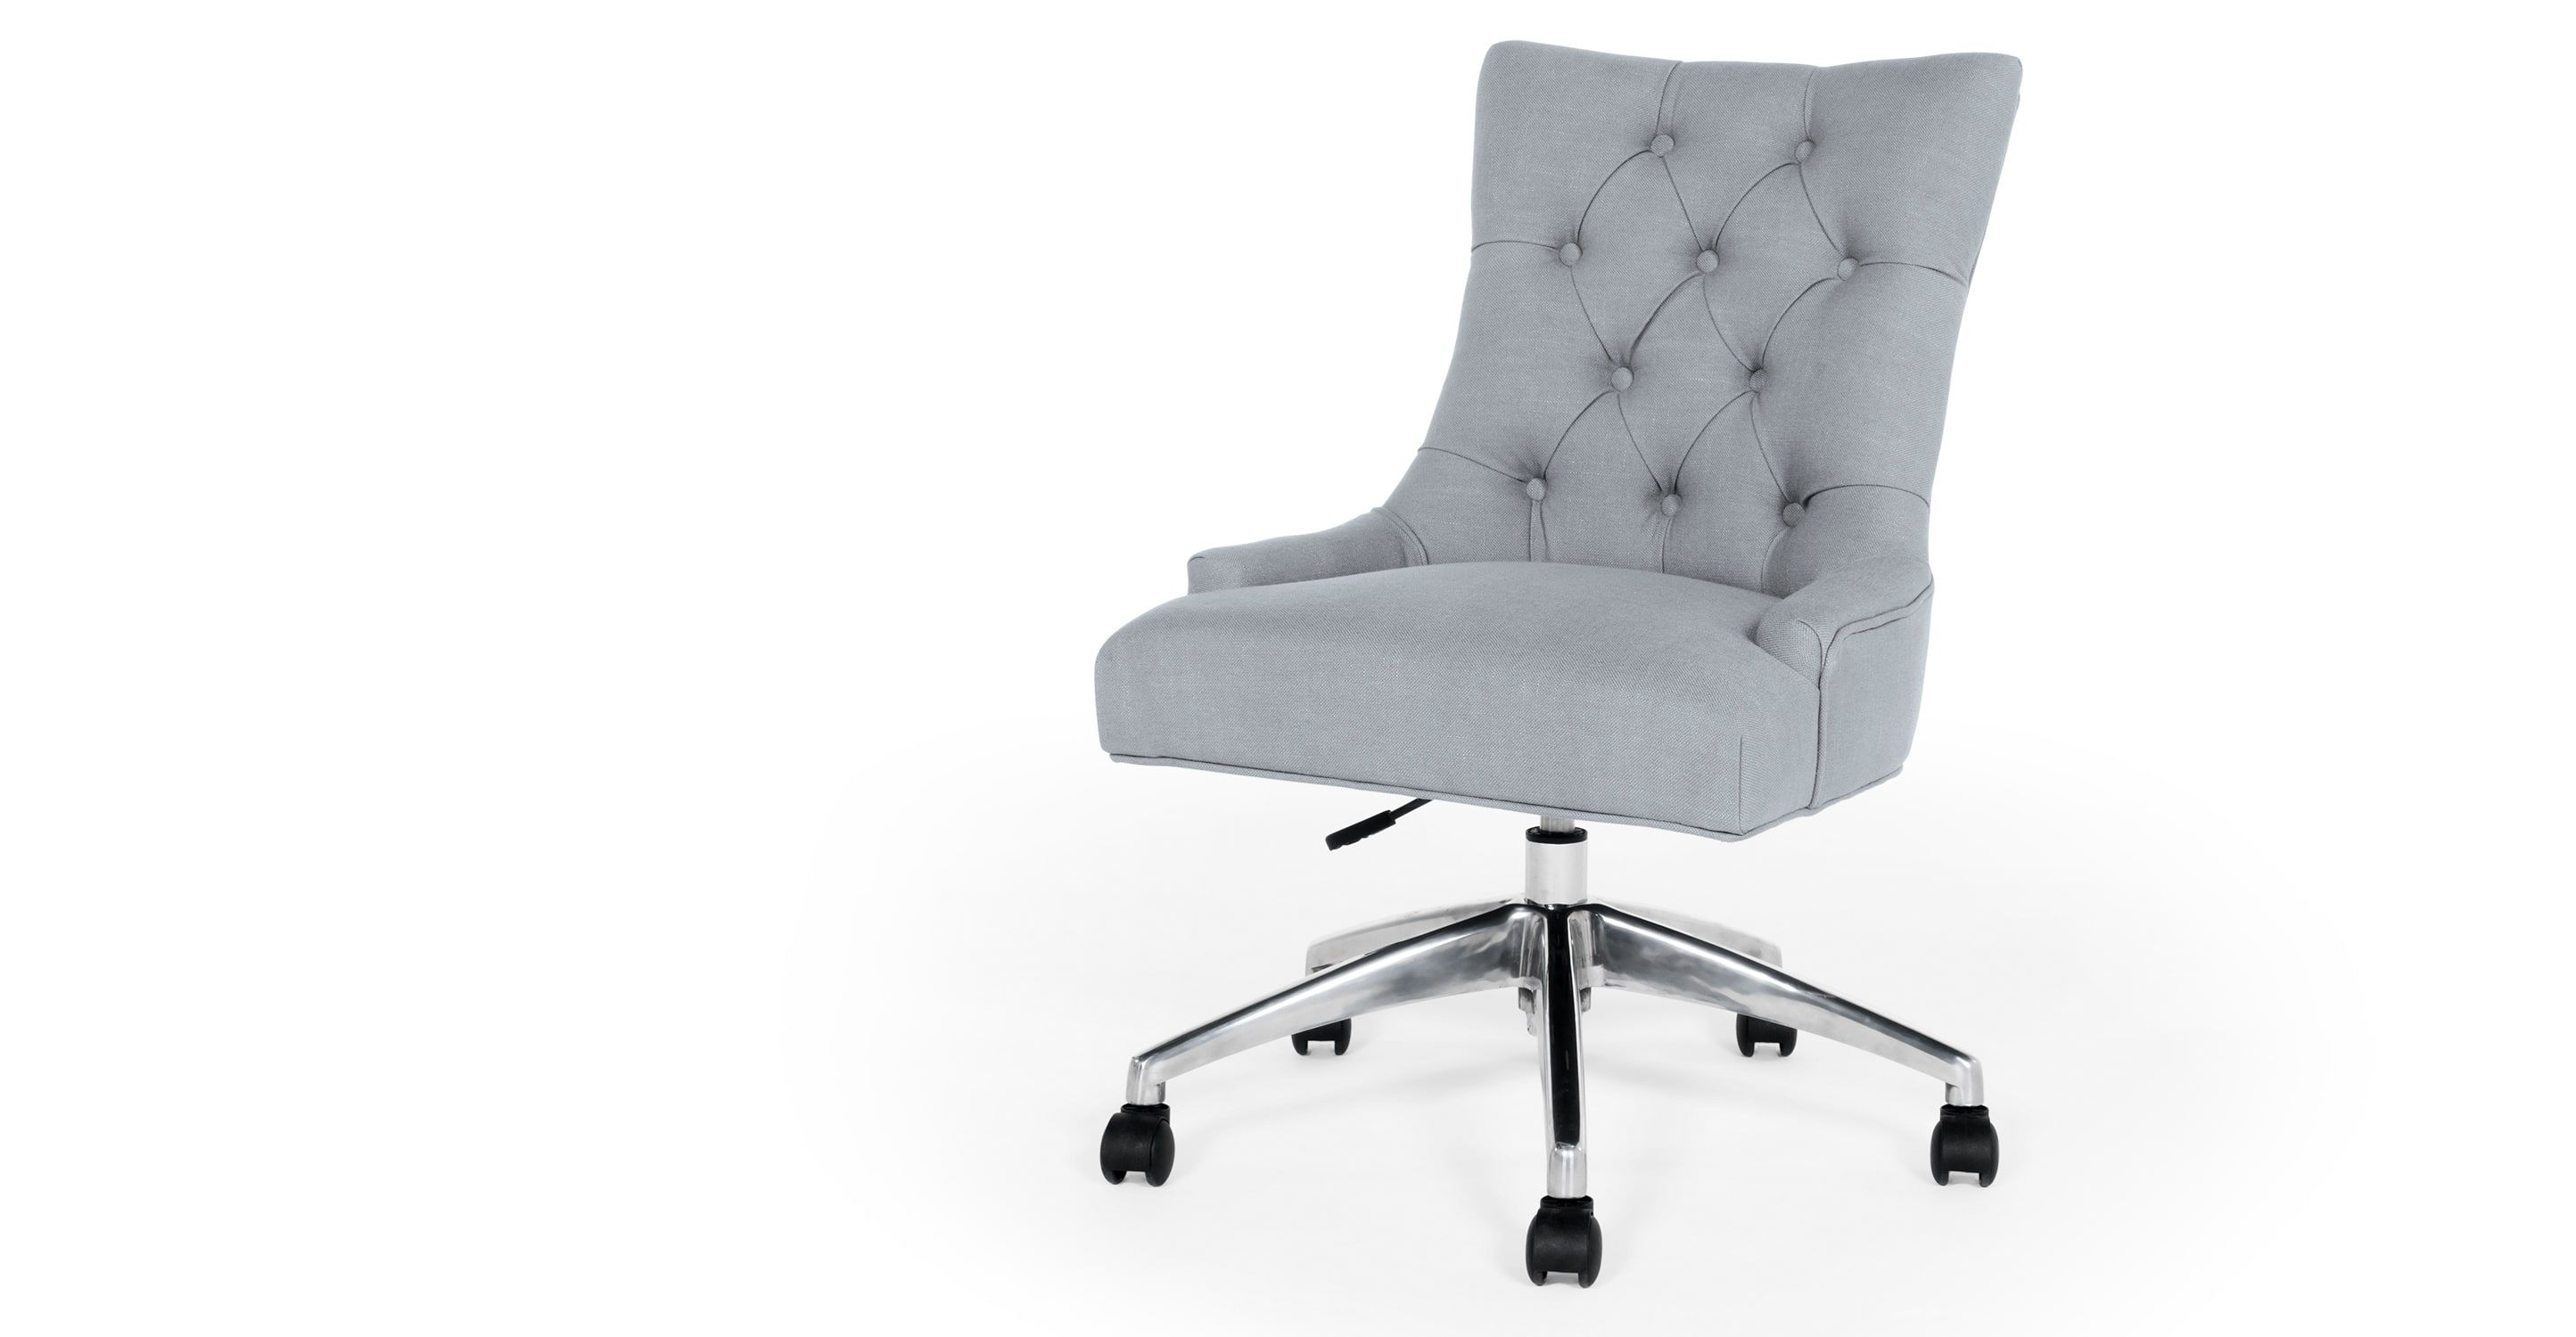 MADE Persian Grey Swivel chair Best office chair